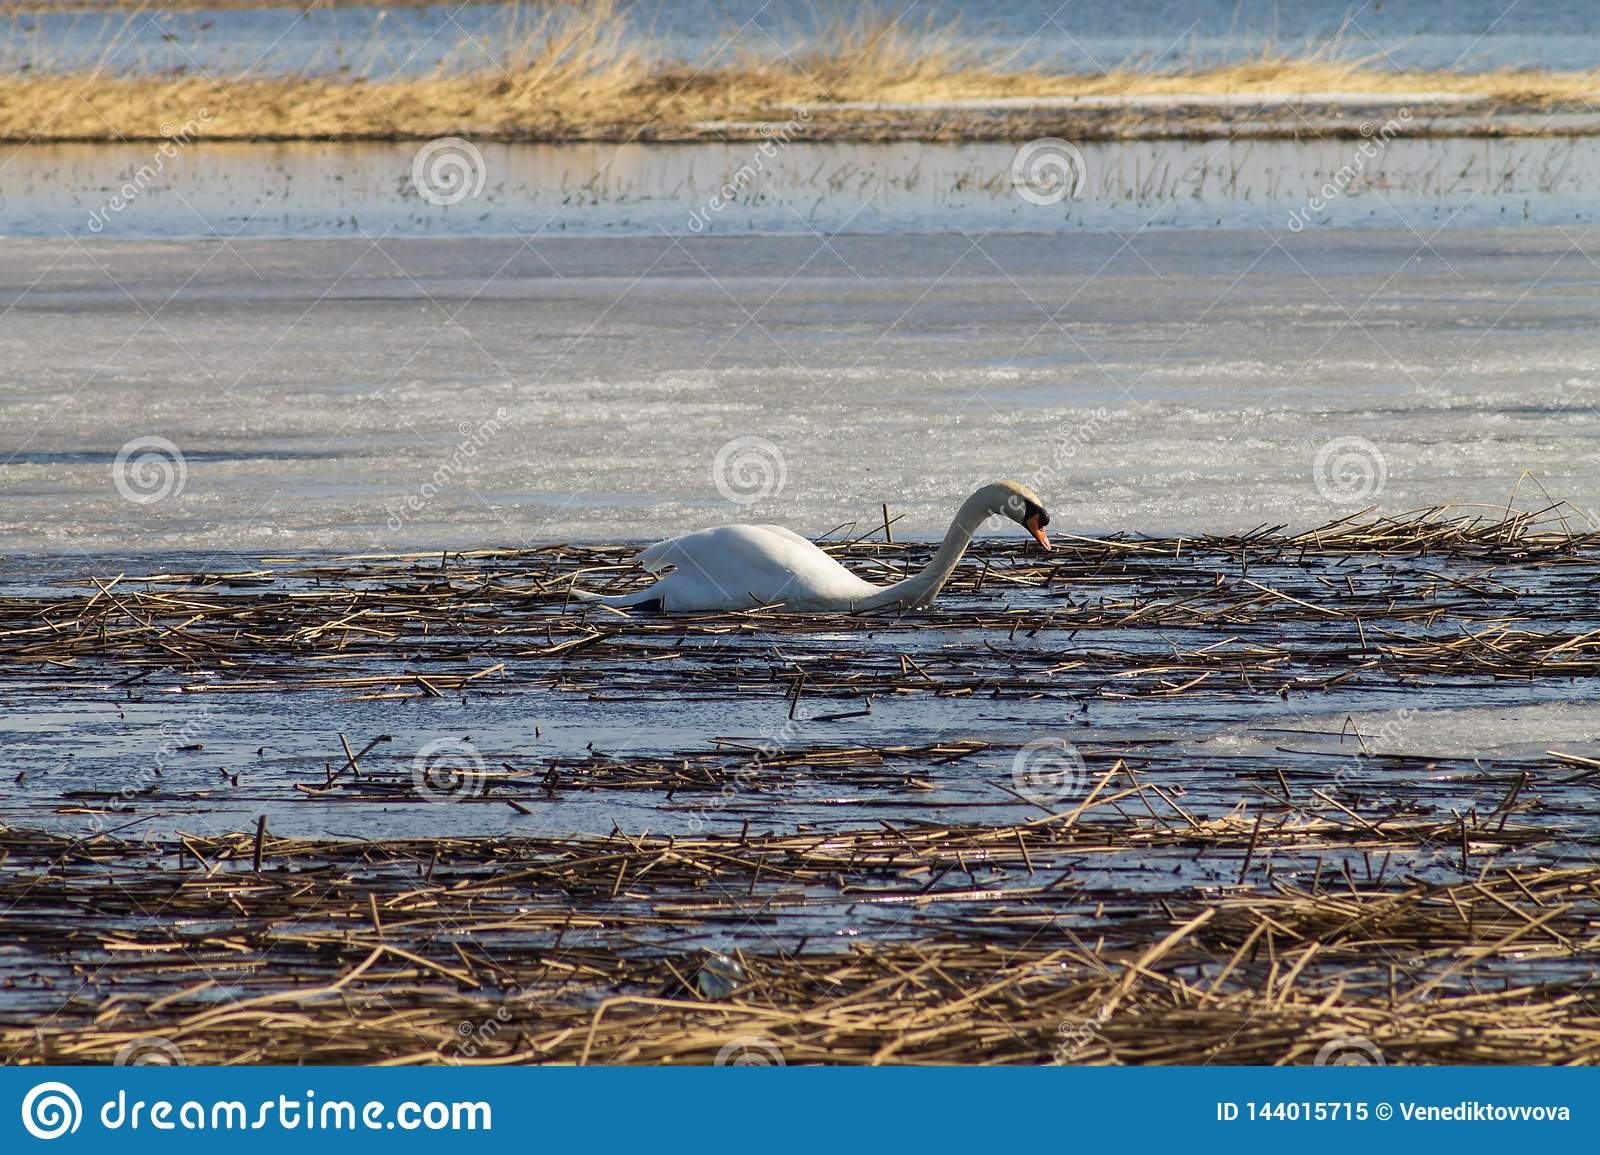 A beautiful white Swan swims in the lake, partially covered with ice on a Sunny spring day